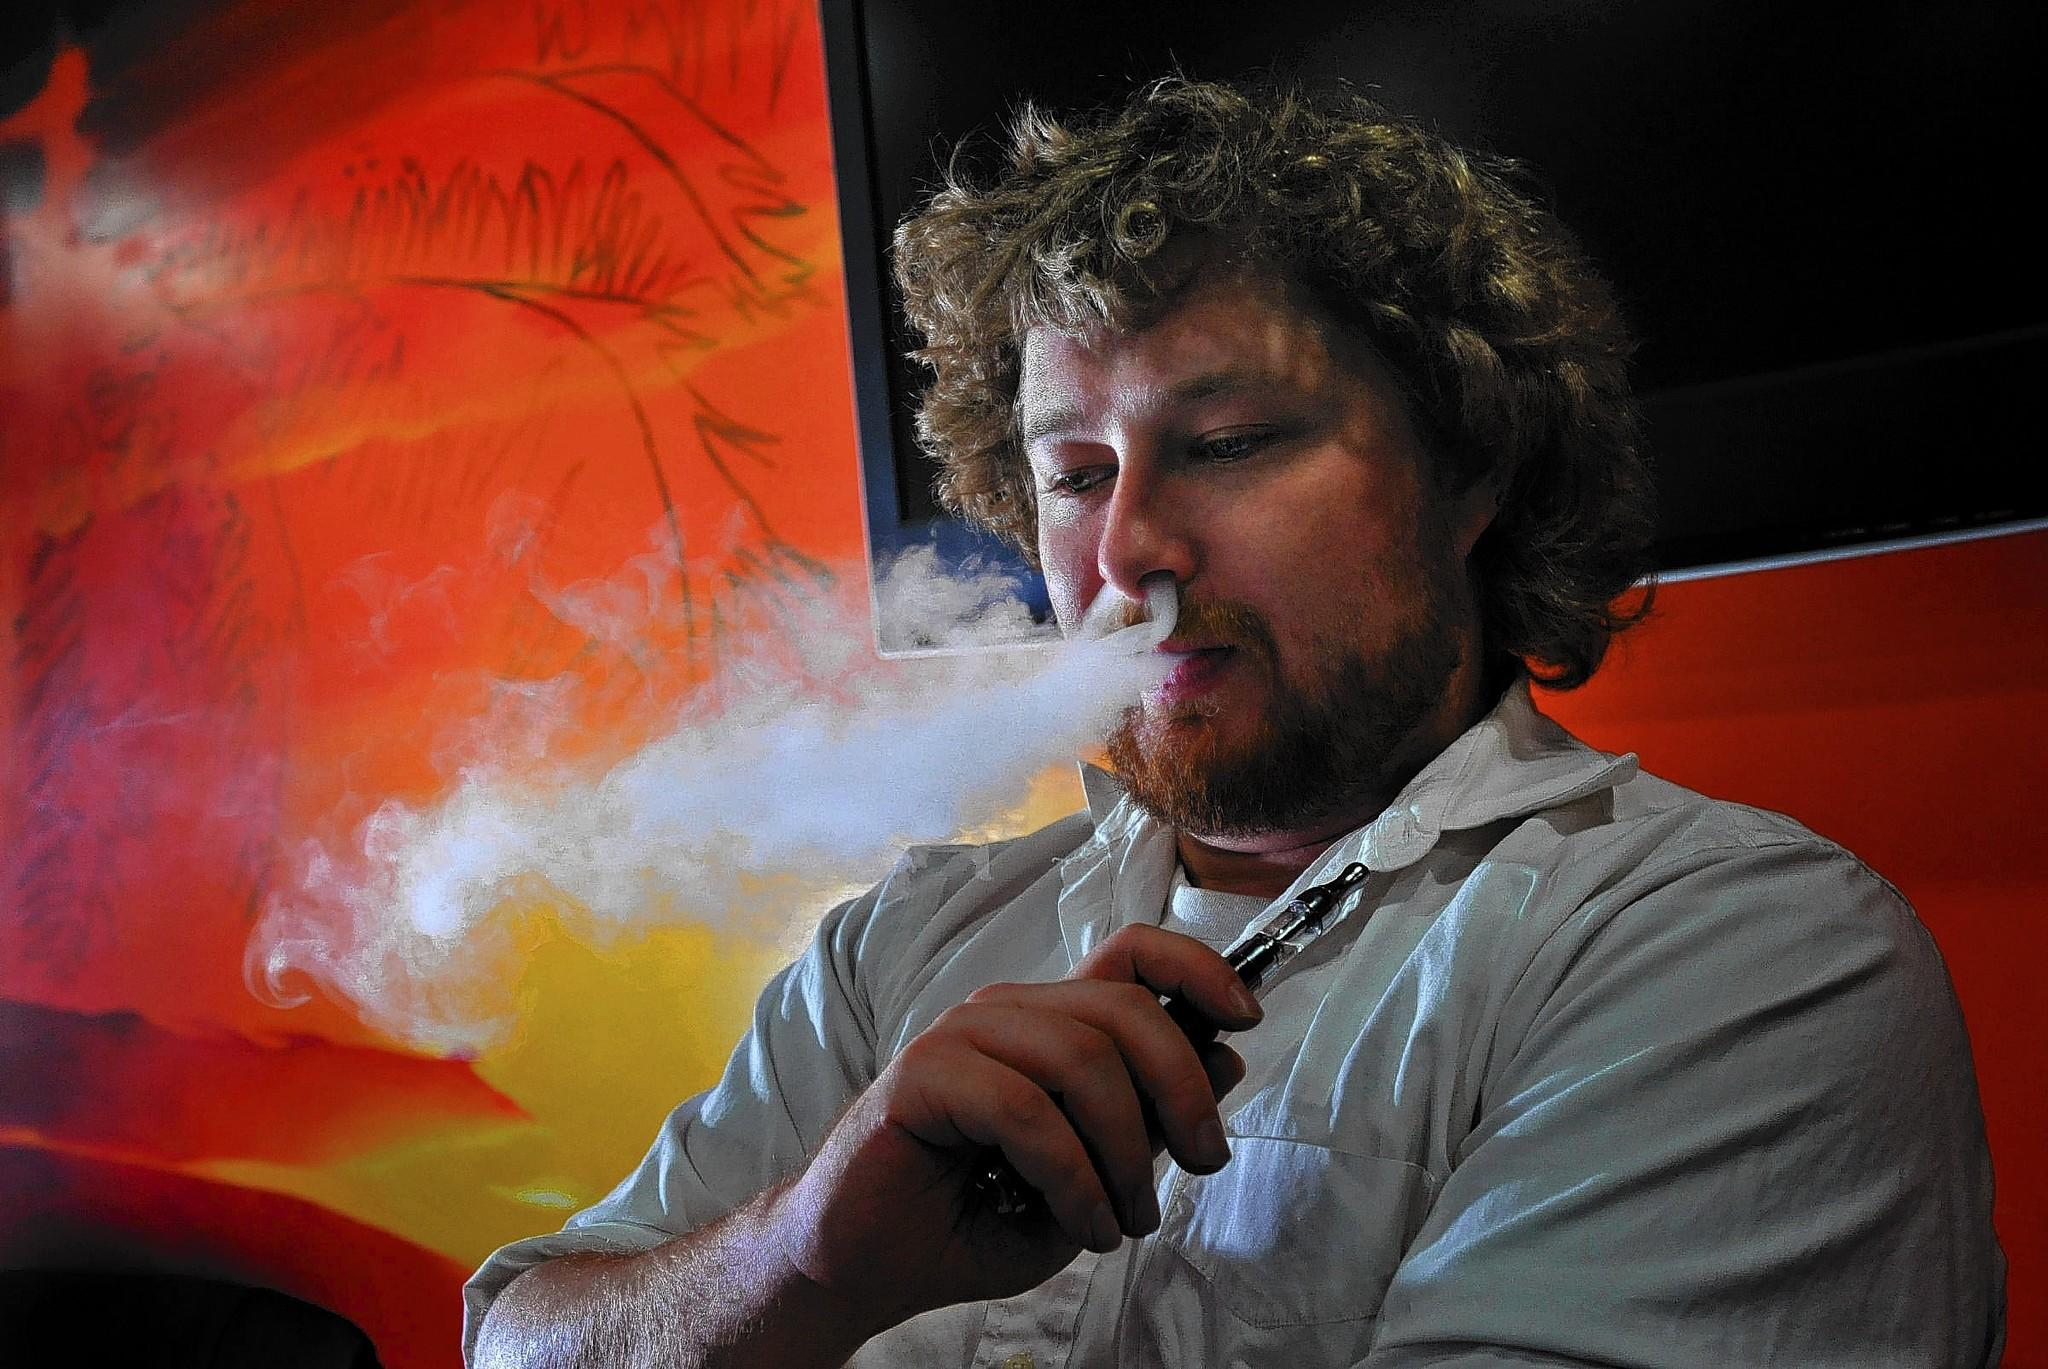 Manager Sam Rogers smoke an electronic cigarette at the Kahuna Vapor shop in the Normandy Shopping Center in Ellicott City.